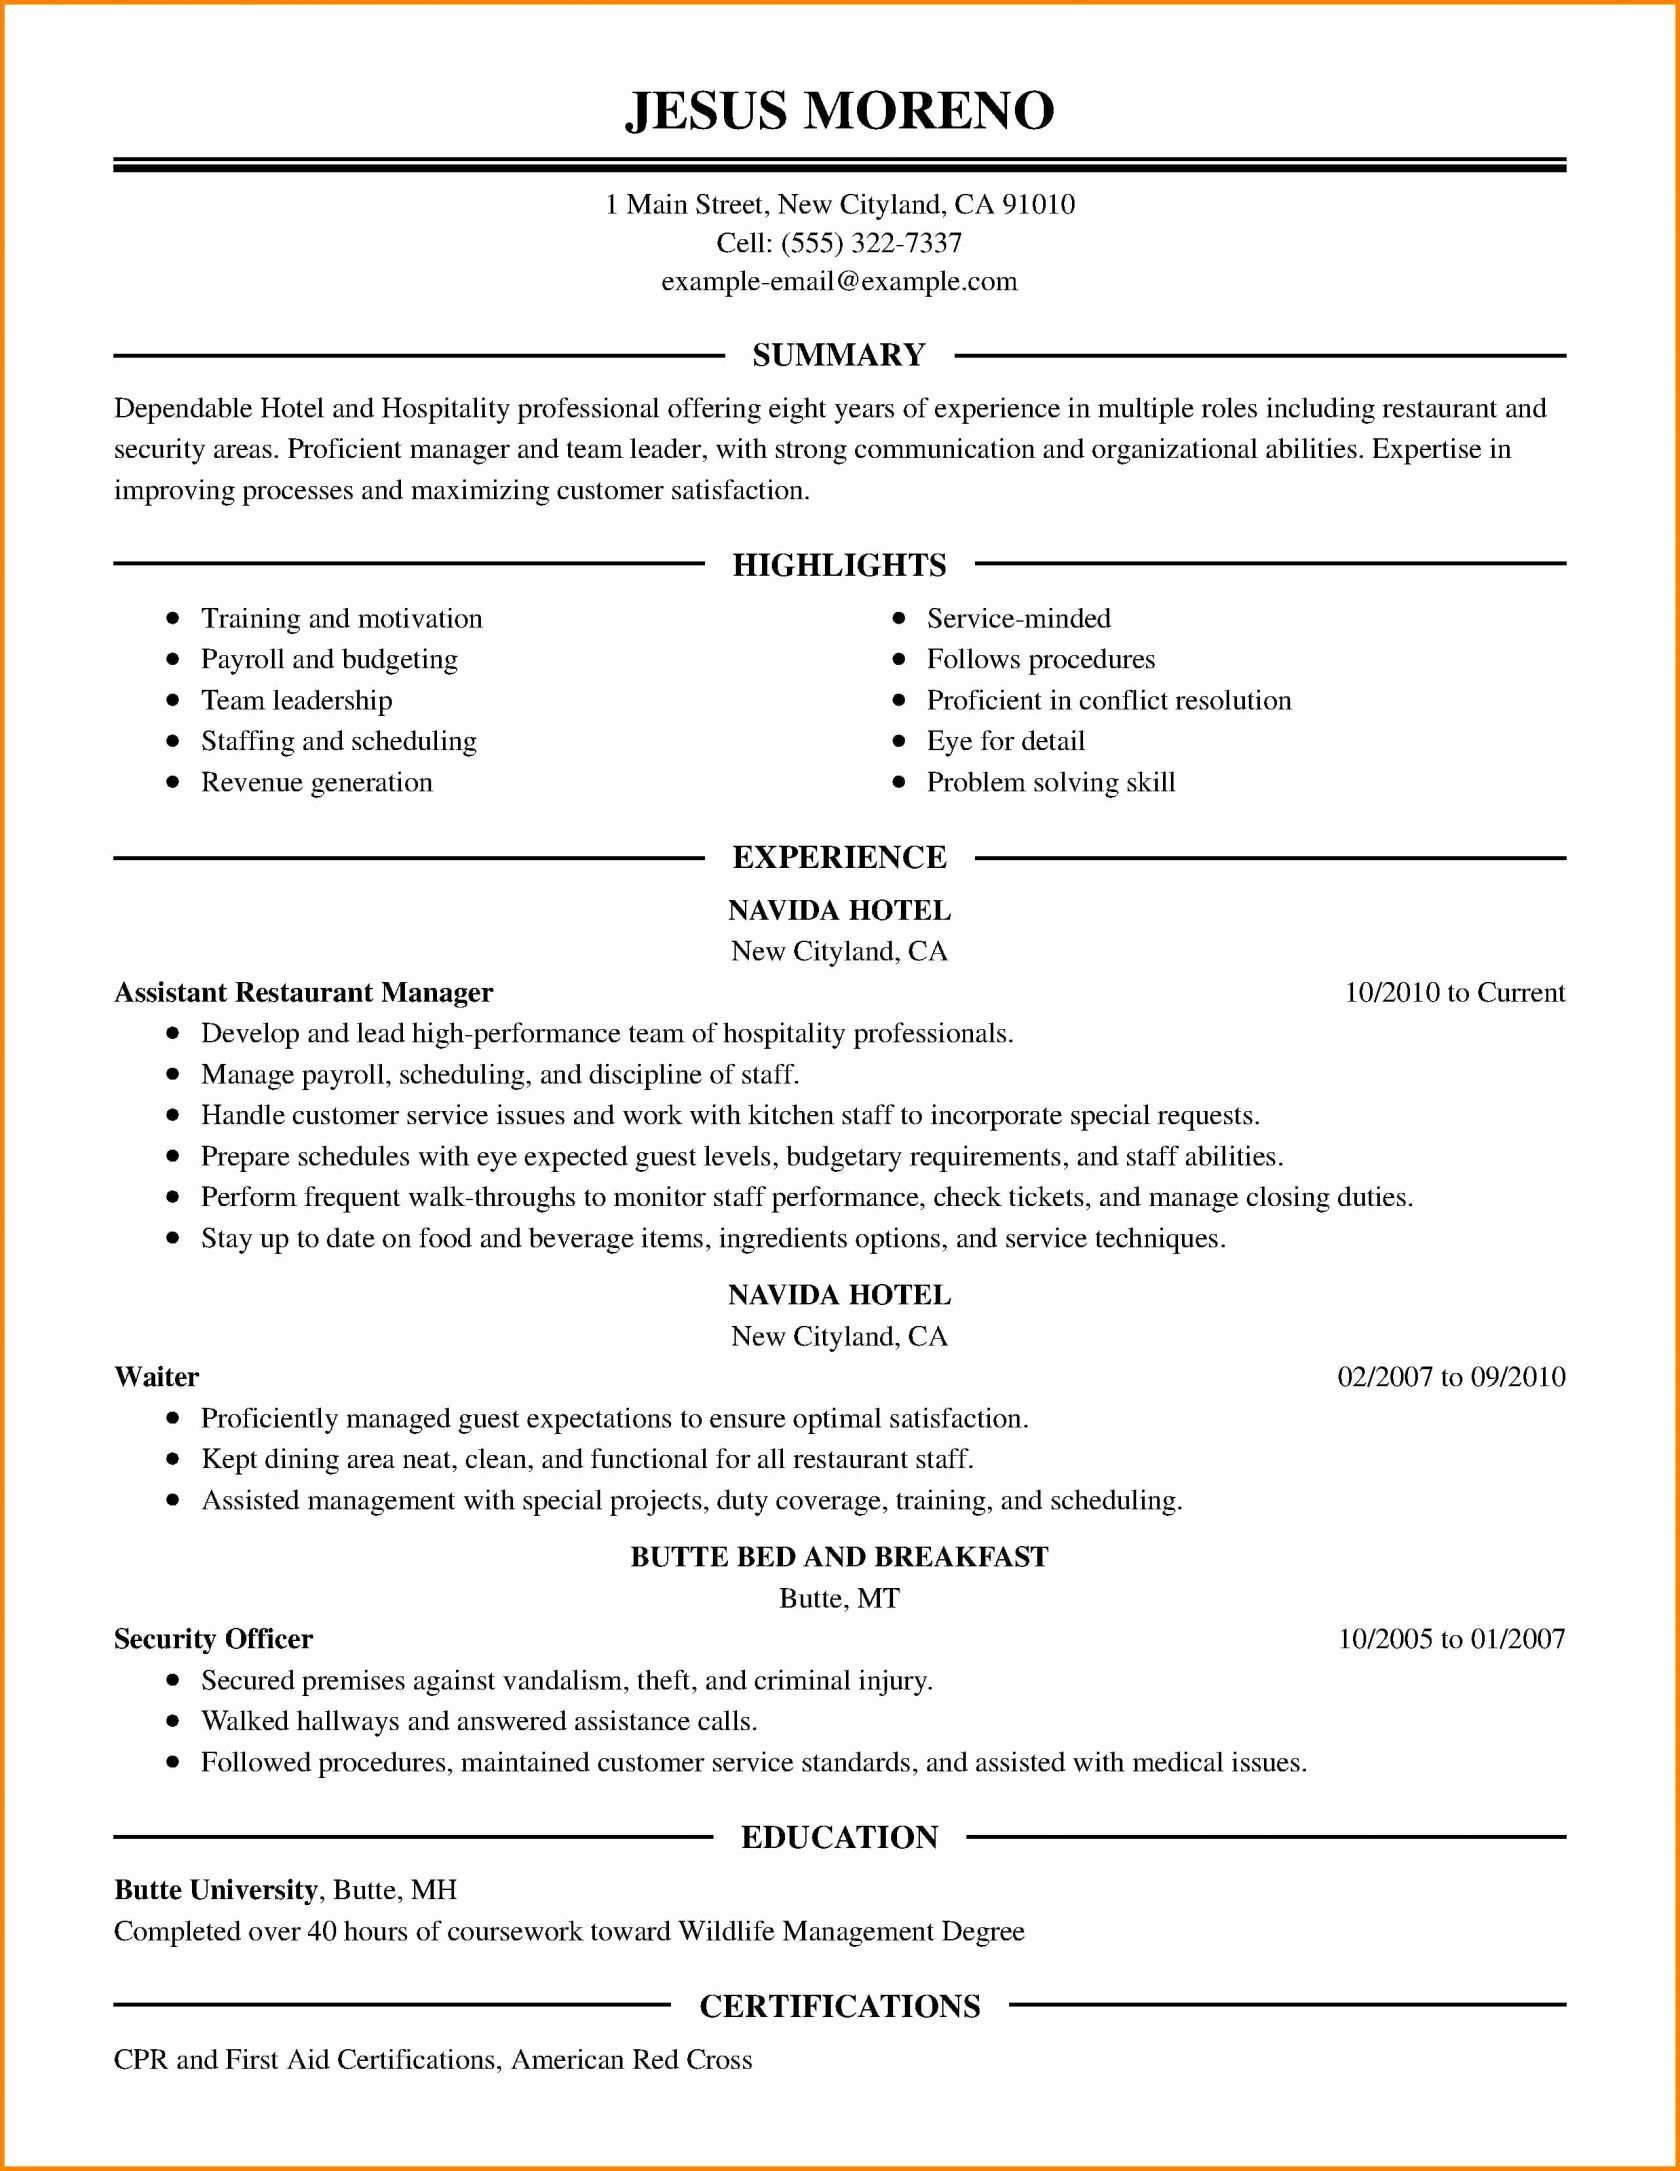 Resume Examples Over 40 , ResumeExamples Good resume